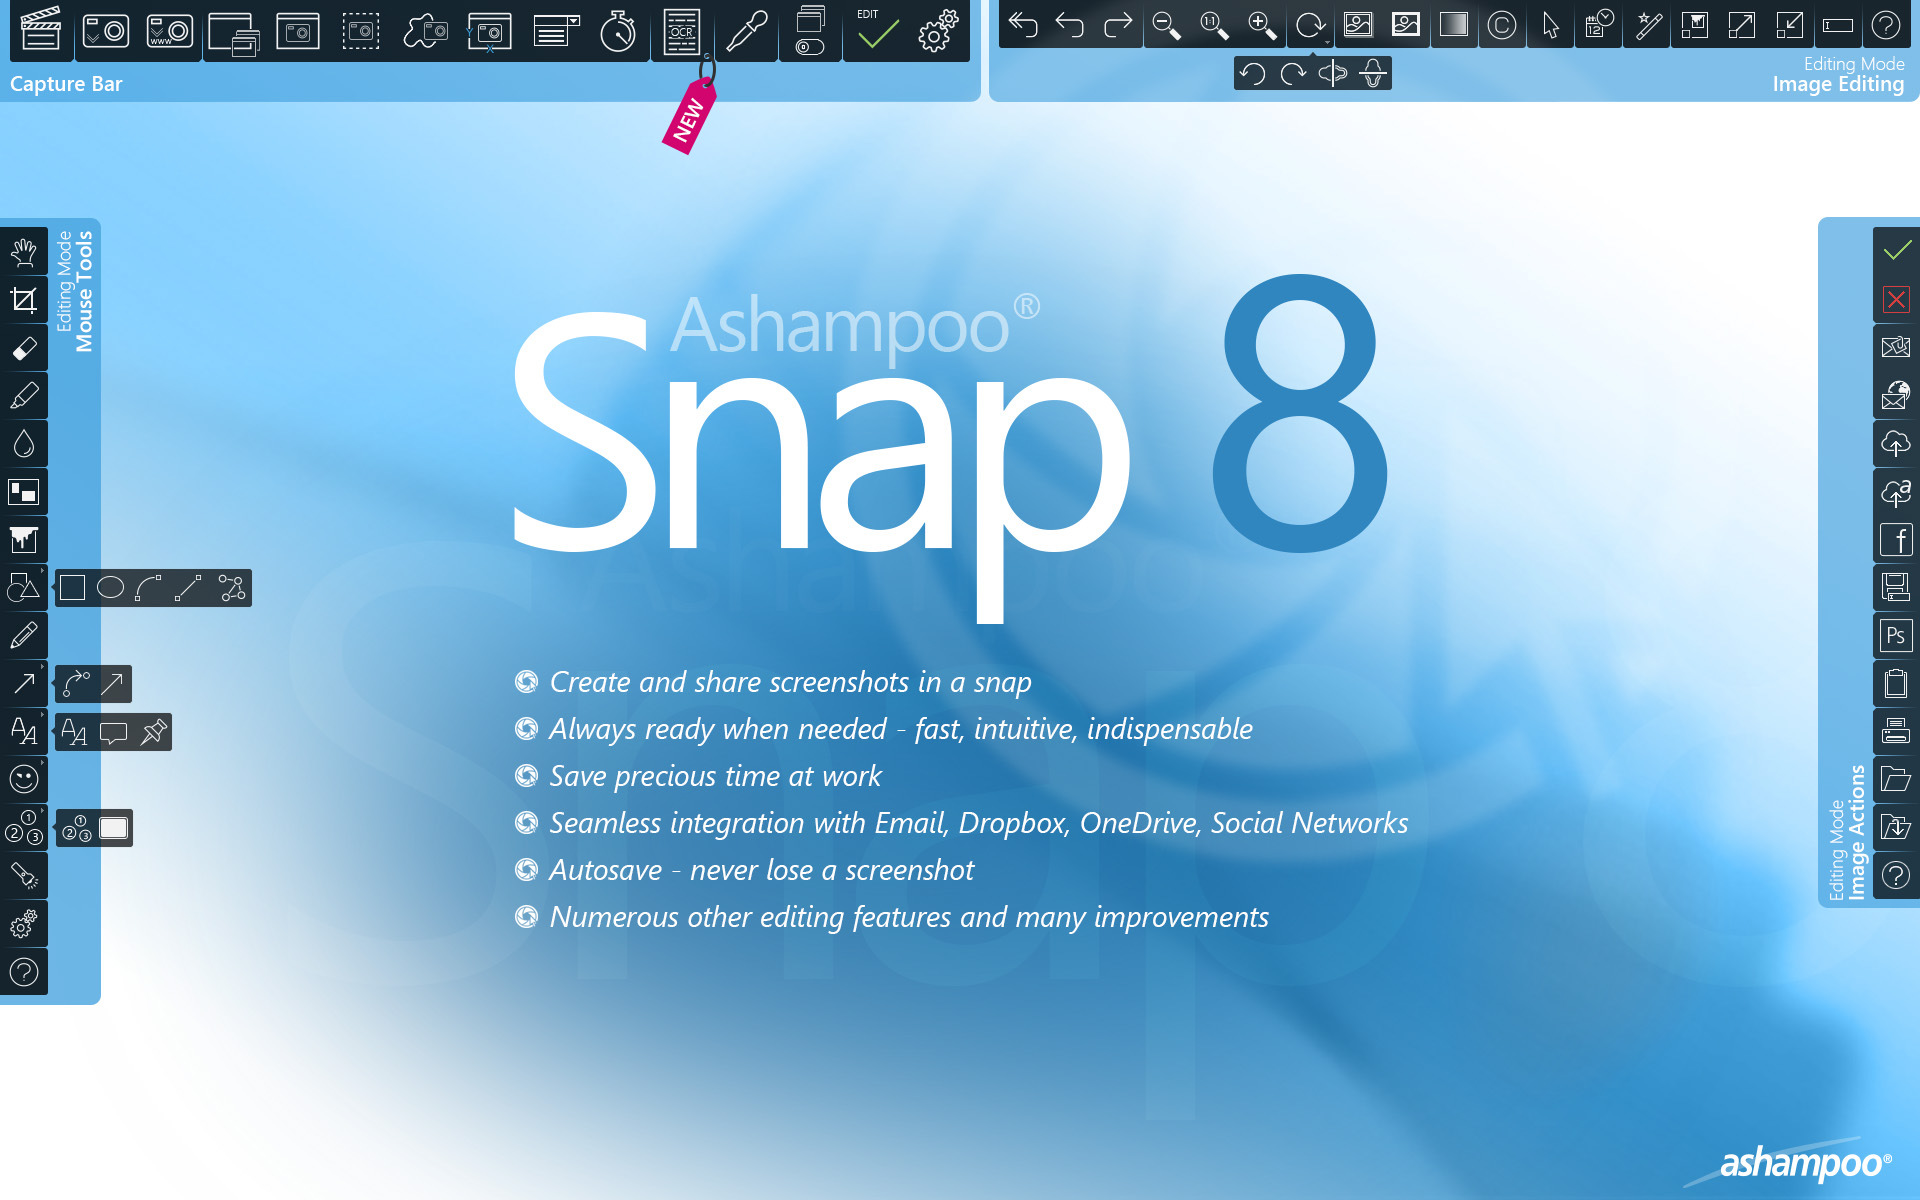 Ashampoo snap patch free download